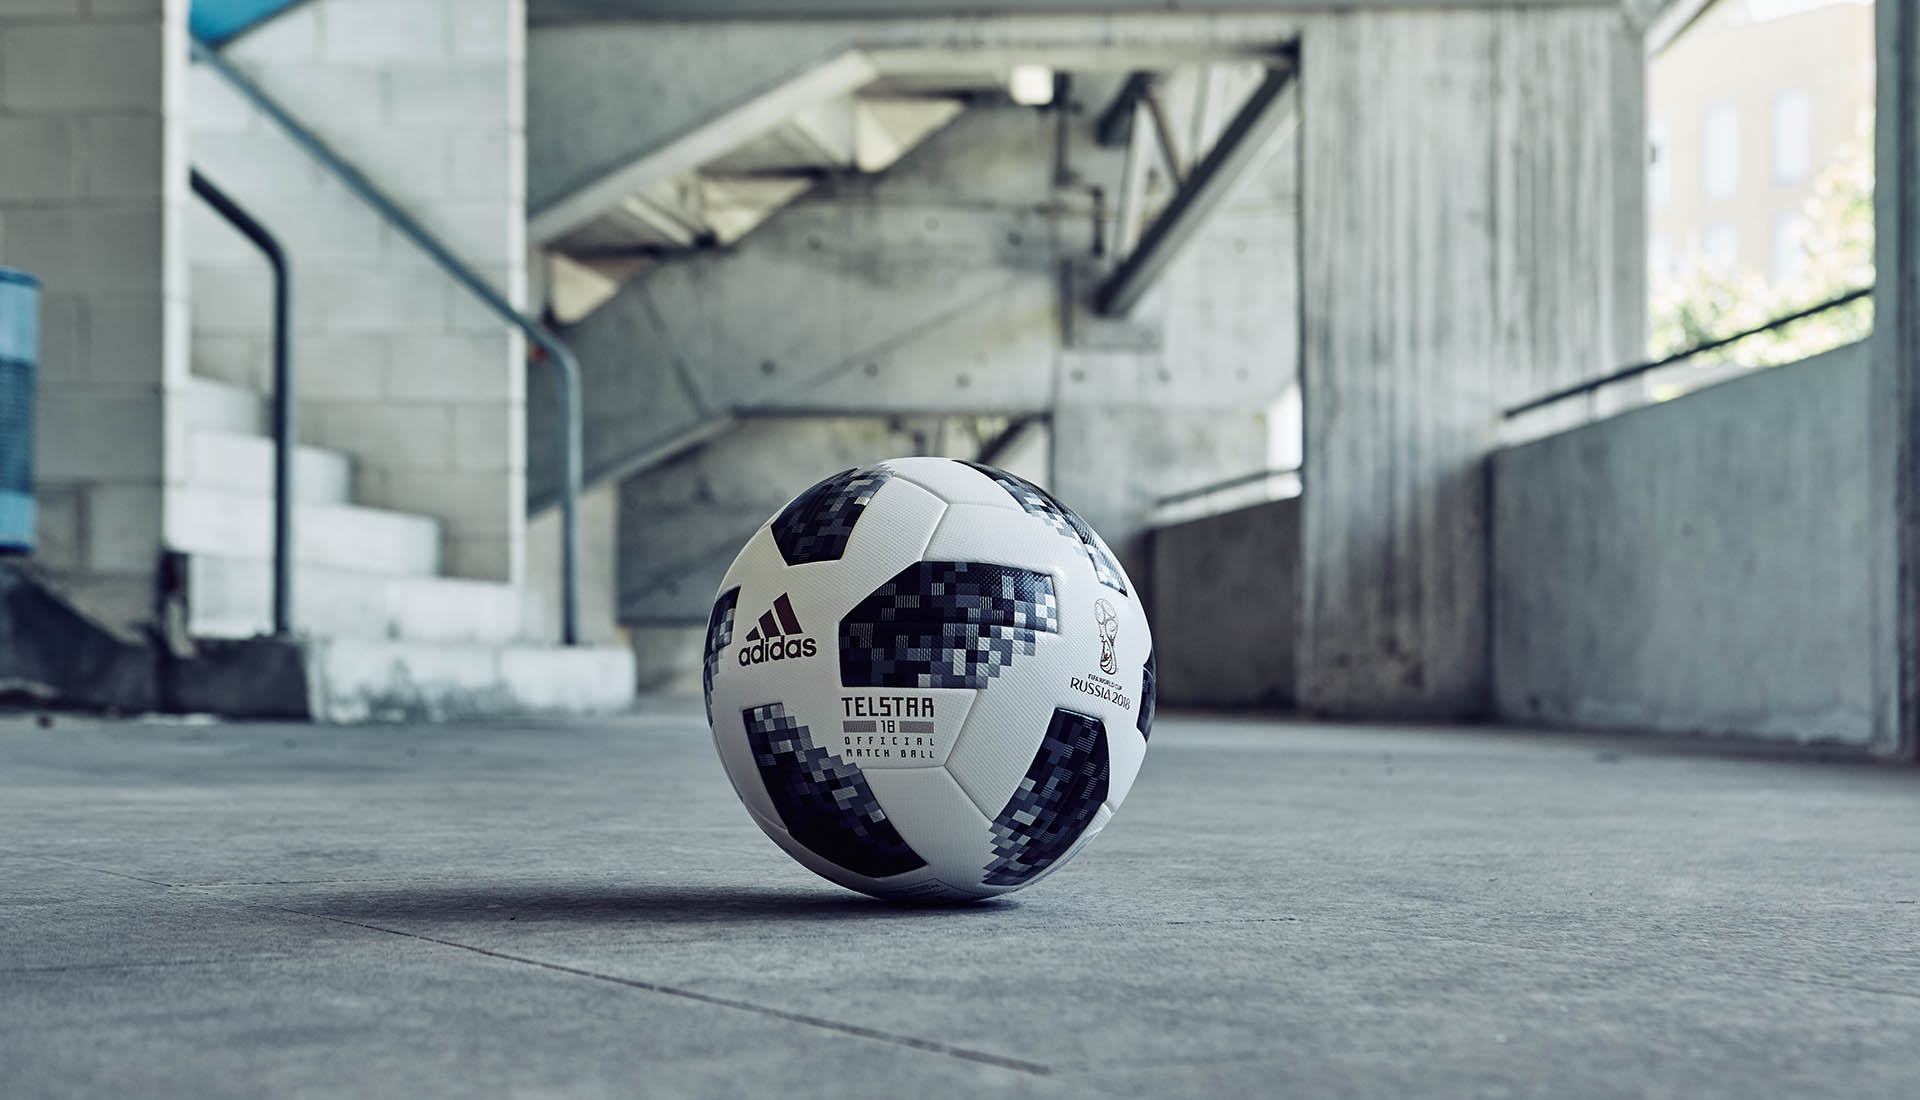 Top Football Ball World Cup 2018 - world-cup-match-ball-adidas-soccerbible_0000__fg_1956  Pictures_362628 .jpg